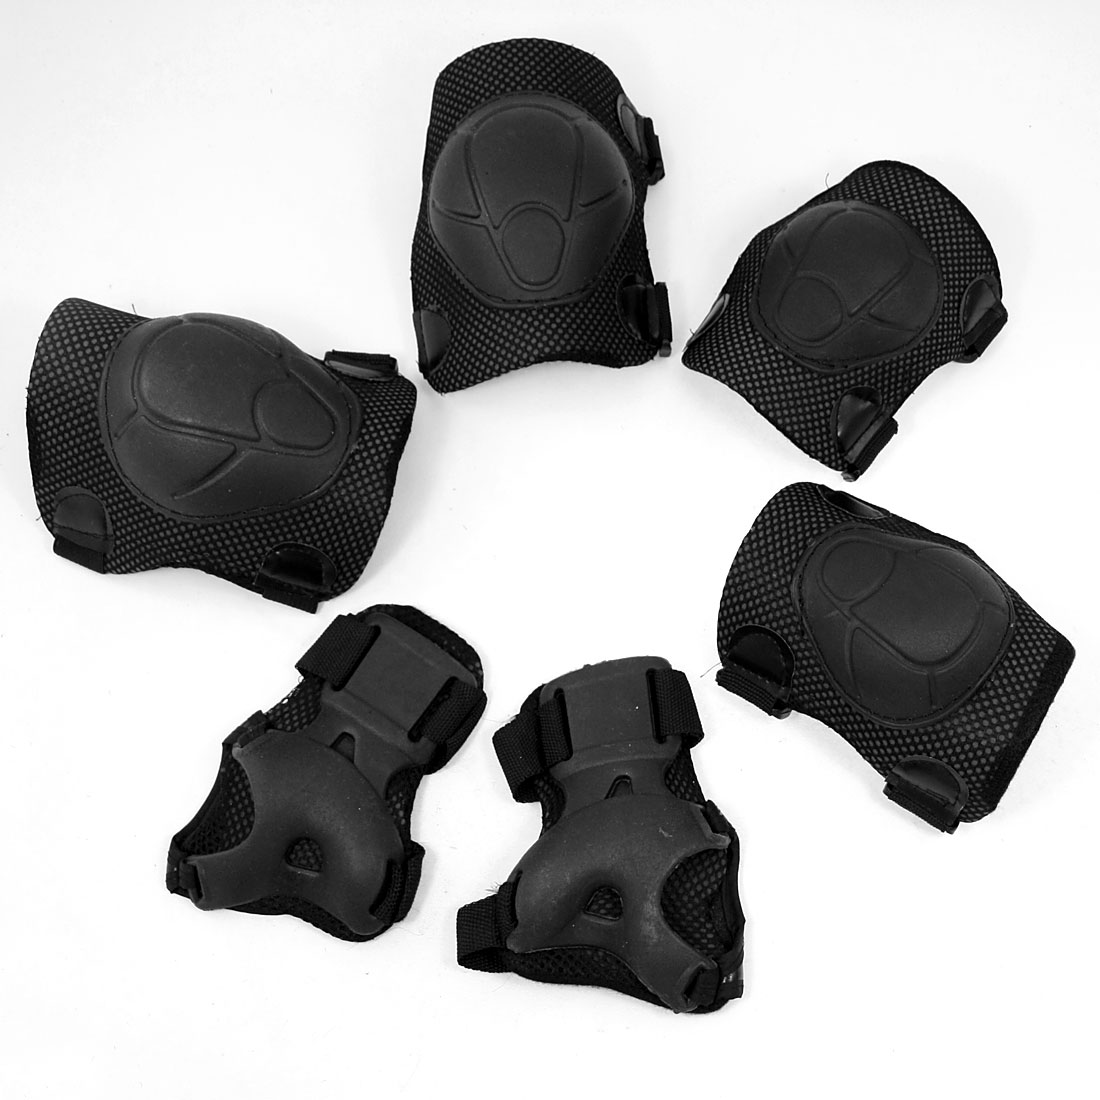 Kid Skating Skiing Black Adjustable Elbow Knee Palm Support Pad Set 6 in 1